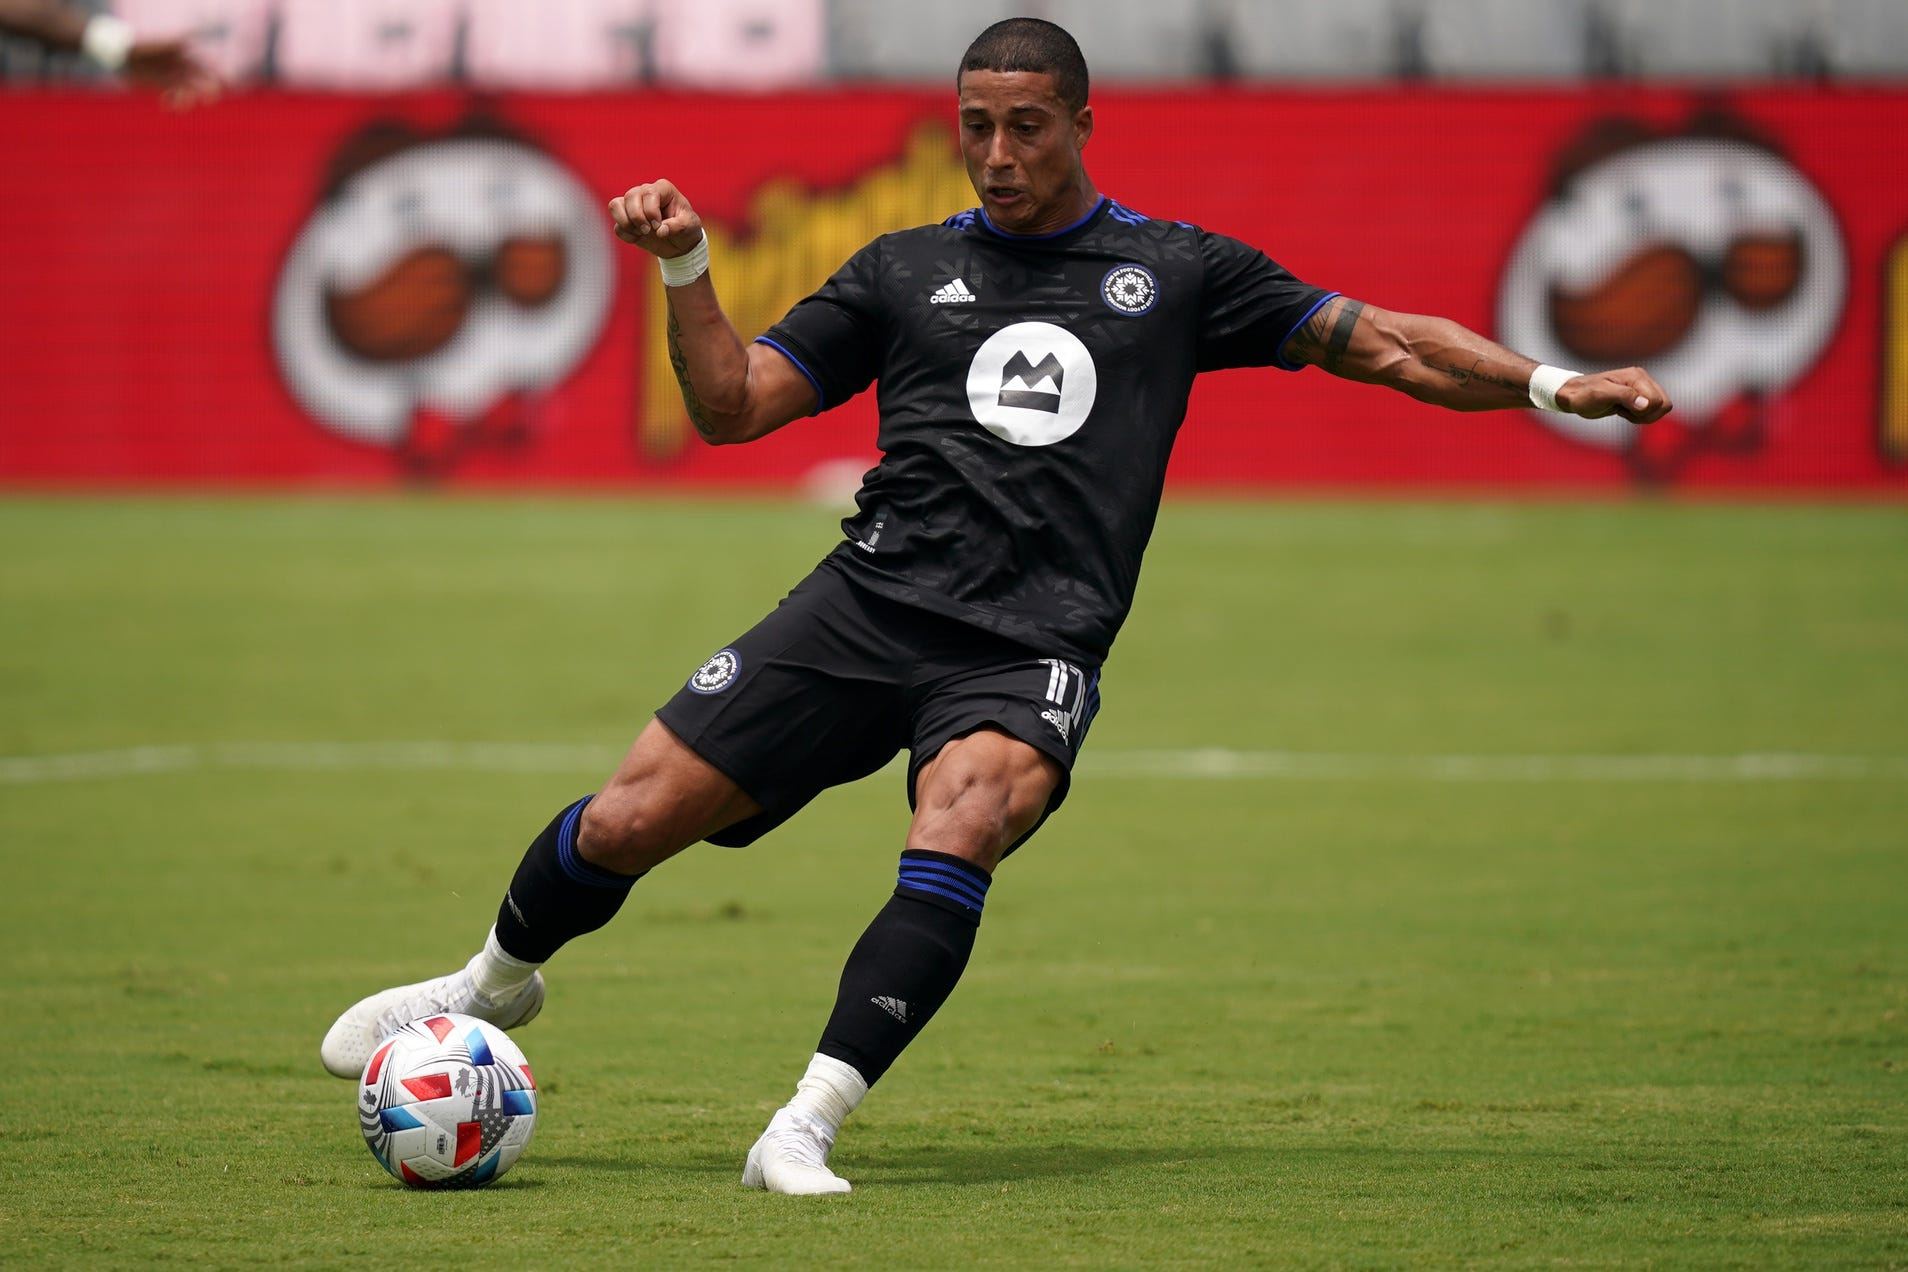 Columbus Crew acquires Erik Hurtado from CF Montreal, who traded the forward because he's not vaccinated